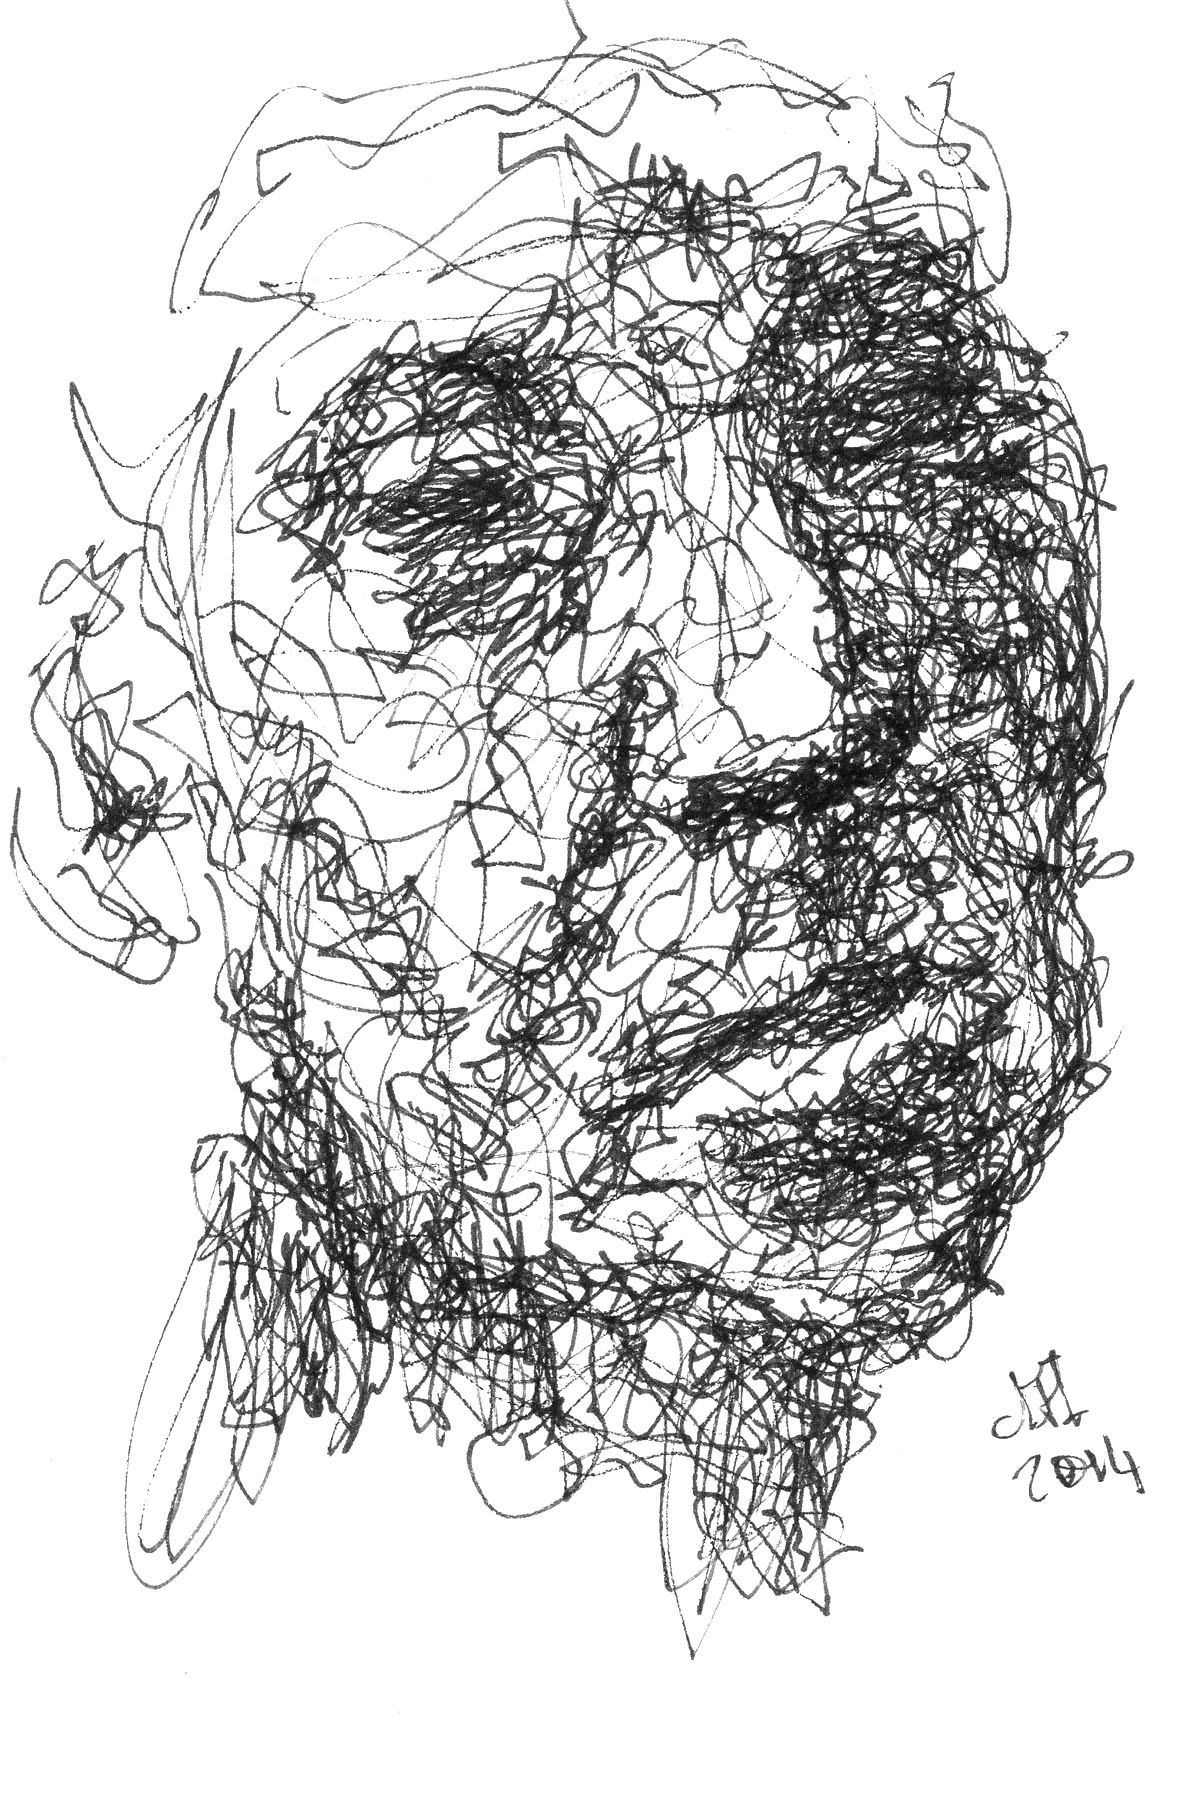 Scribble Sketch Drawing : The pen scribble sketches of dougie harley d h